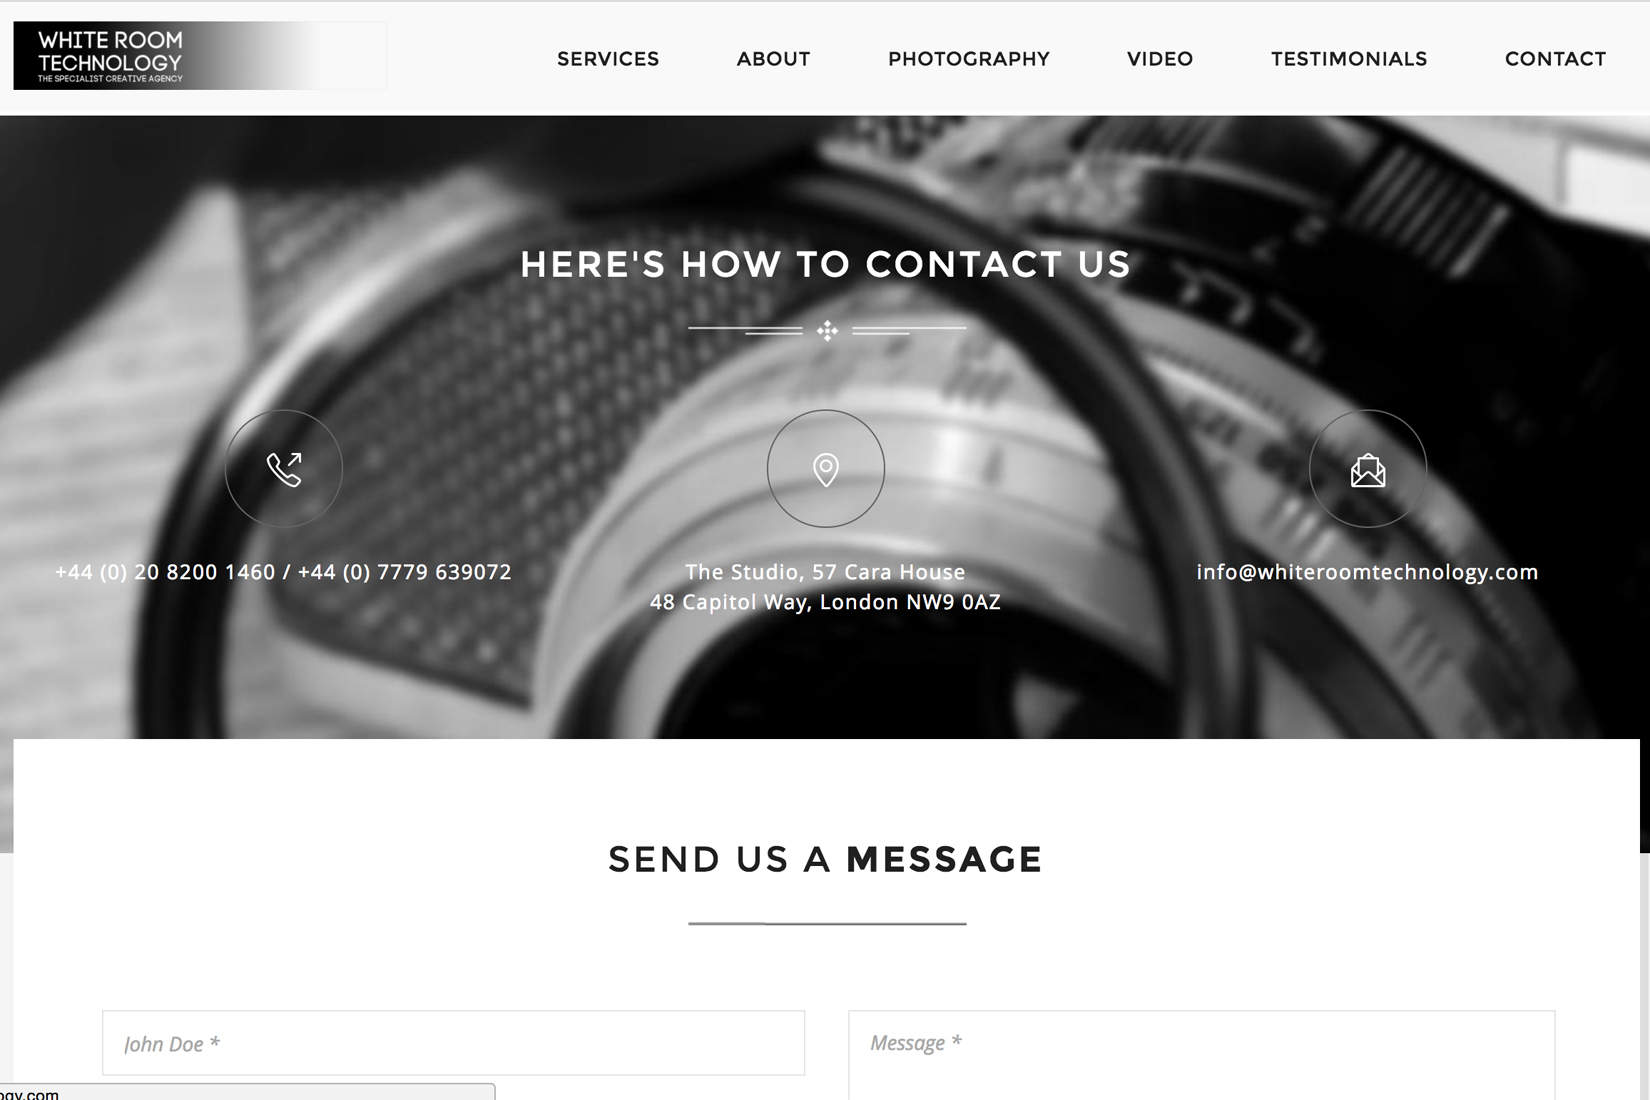 White Room Technology Website by Presto Web Design - Contact Page